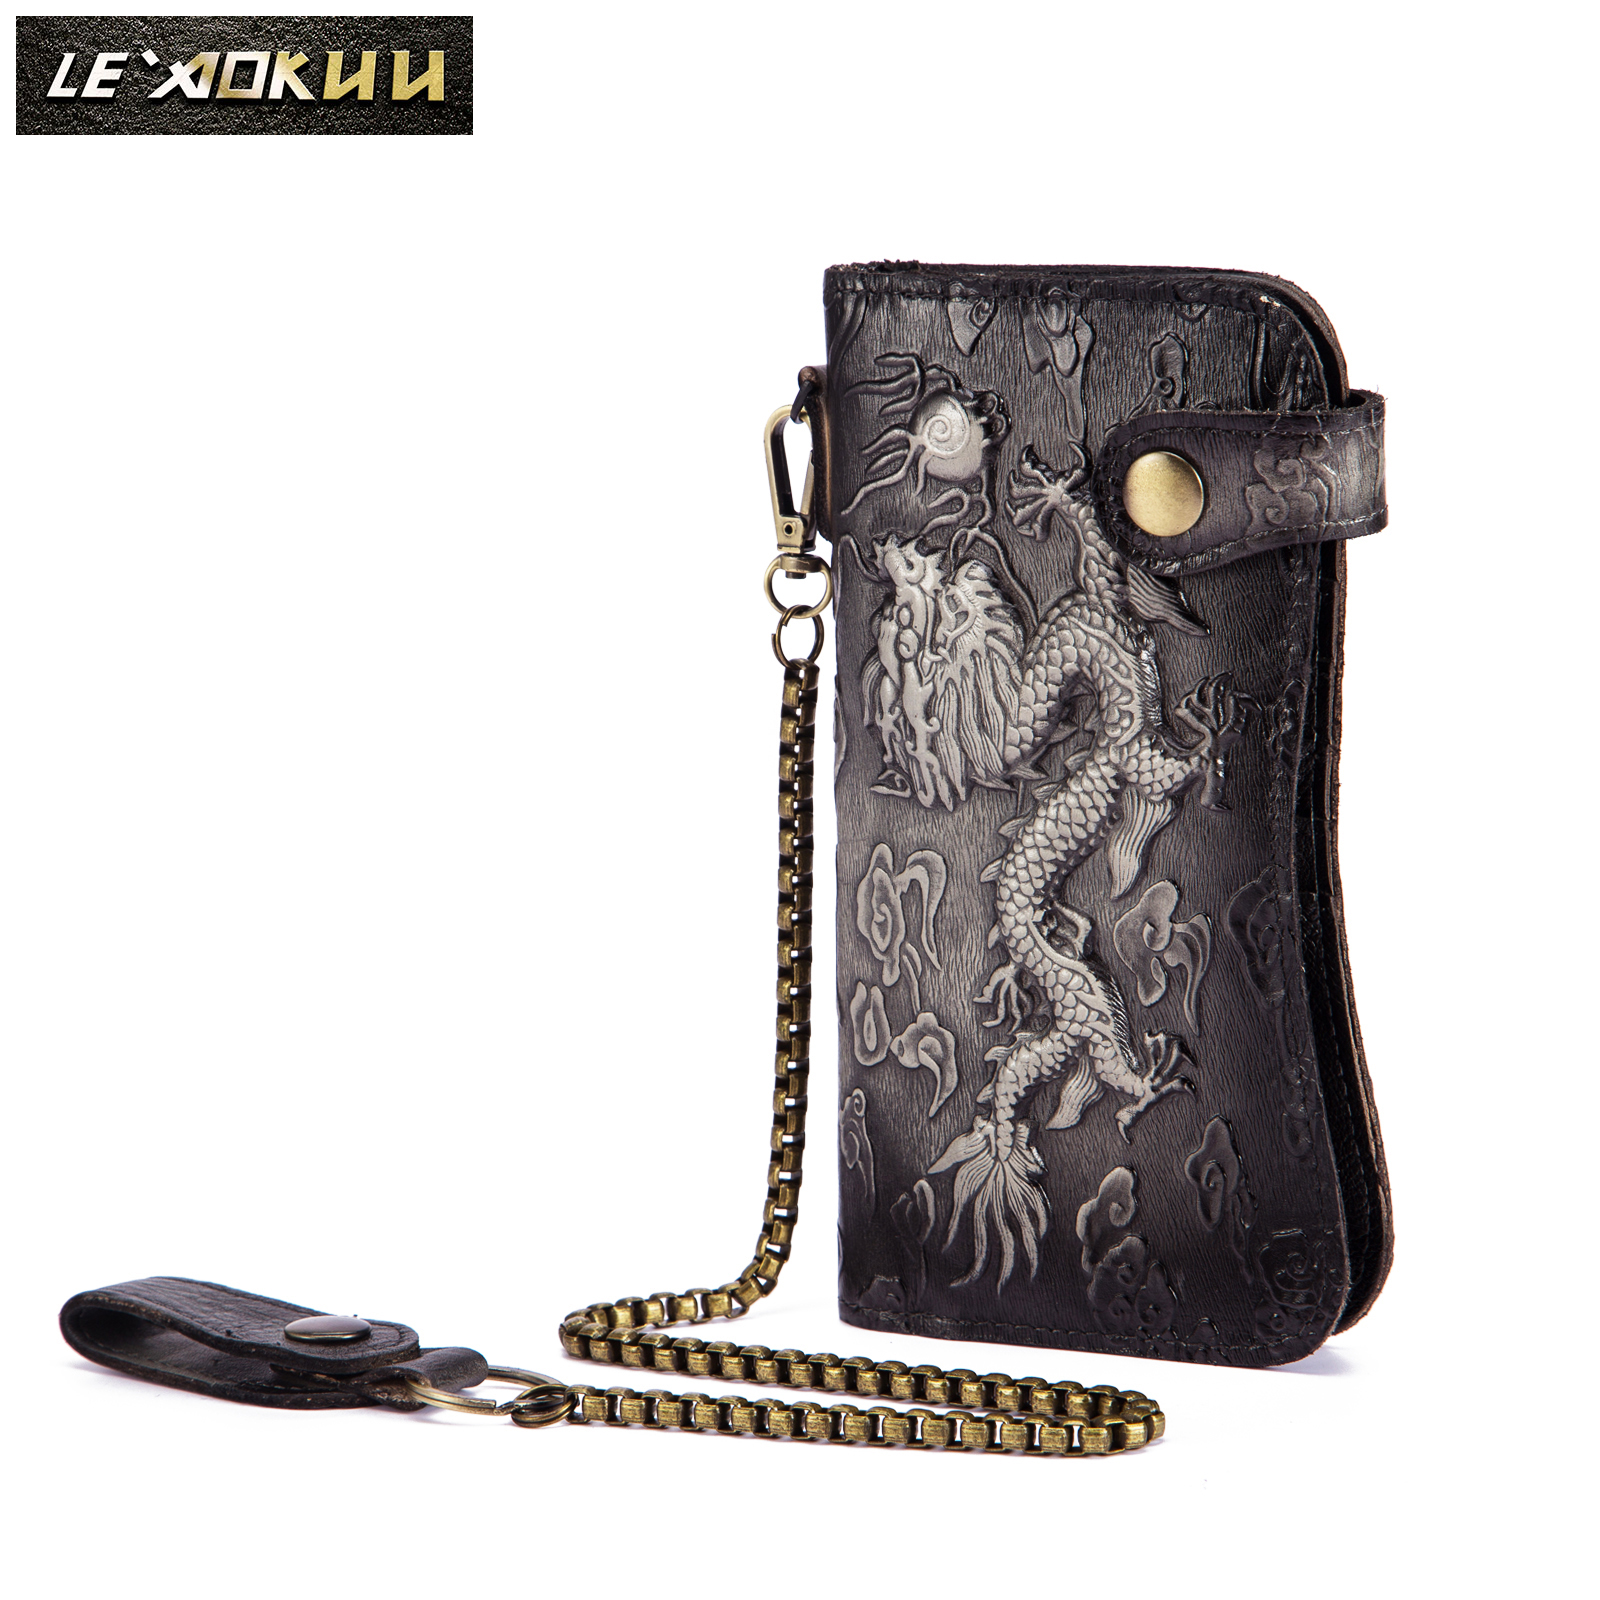 Cattle Male Organizal Real Leather Design Dargon Tiger Emboss Checkbook Iron Chain Wallet Purse Clutch Handbag 1088